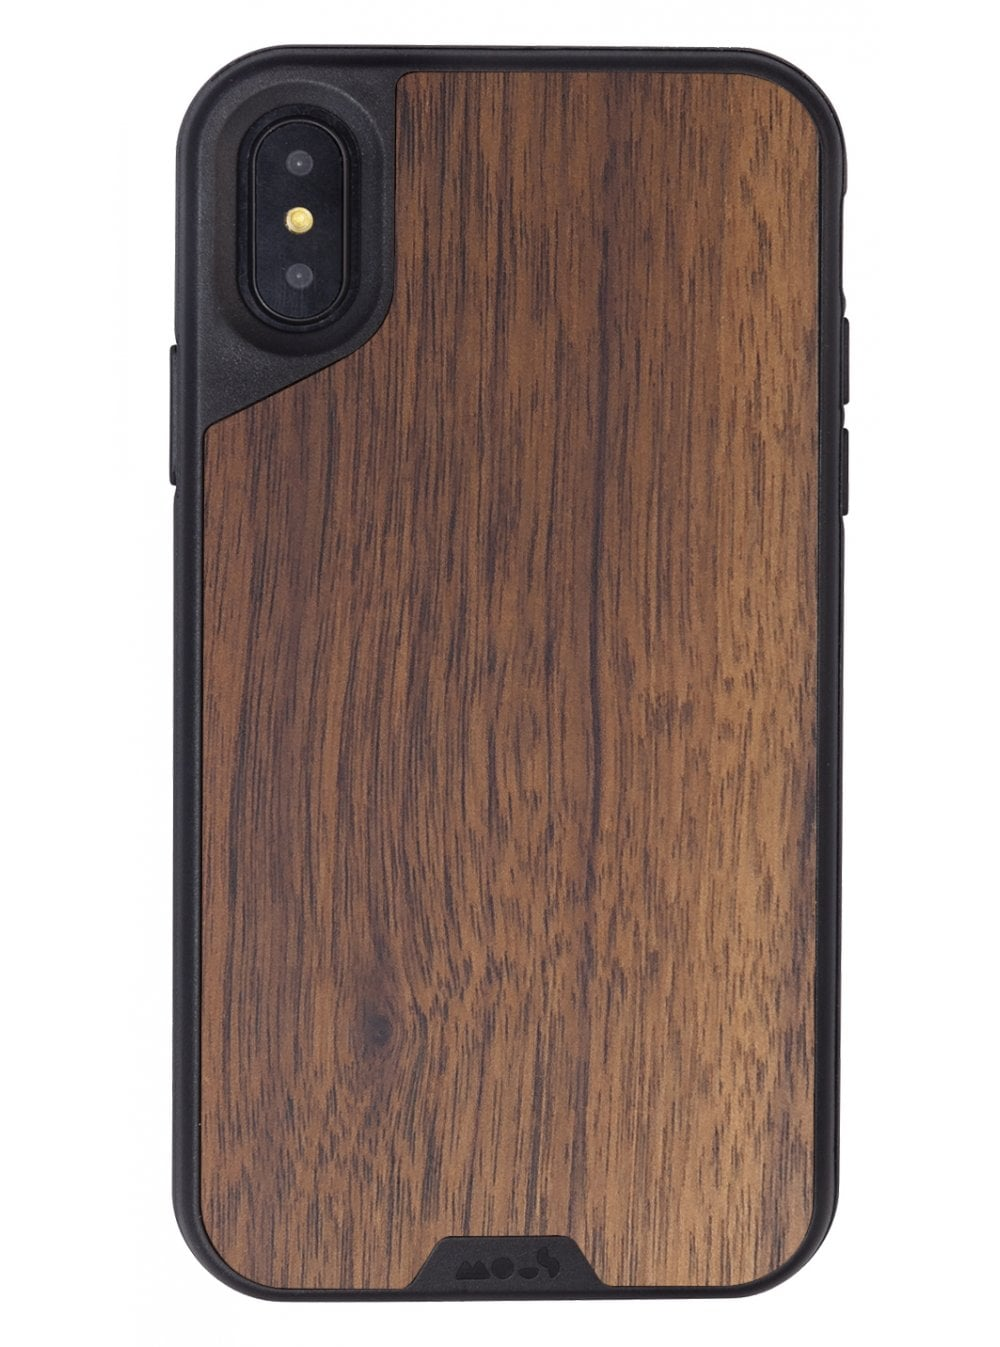 quality design 5a9b7 67eaa Mous iPhone X Walnut Protective Case